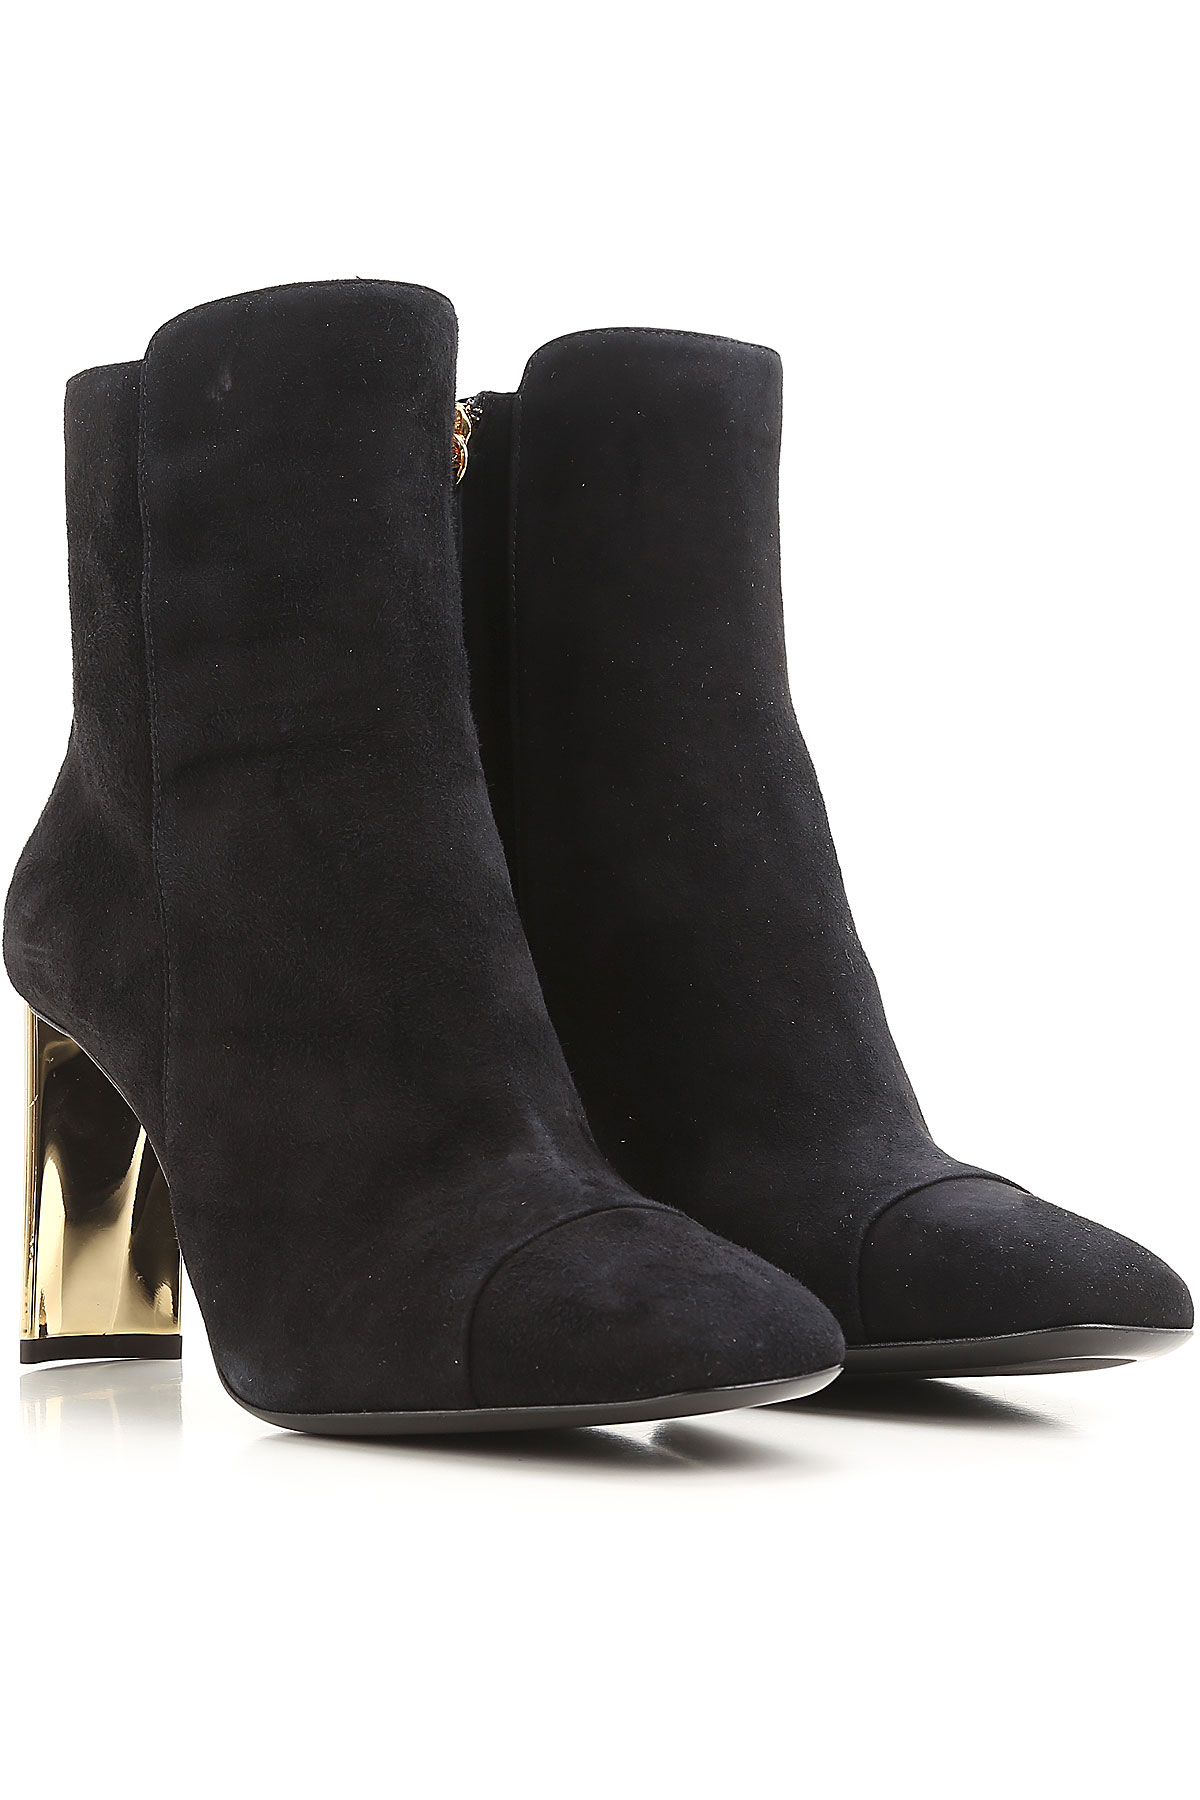 Giuseppe Zanotti Design Boots for Women, Booties On Sale in Outlet, Black, suede, 2019, 7 8